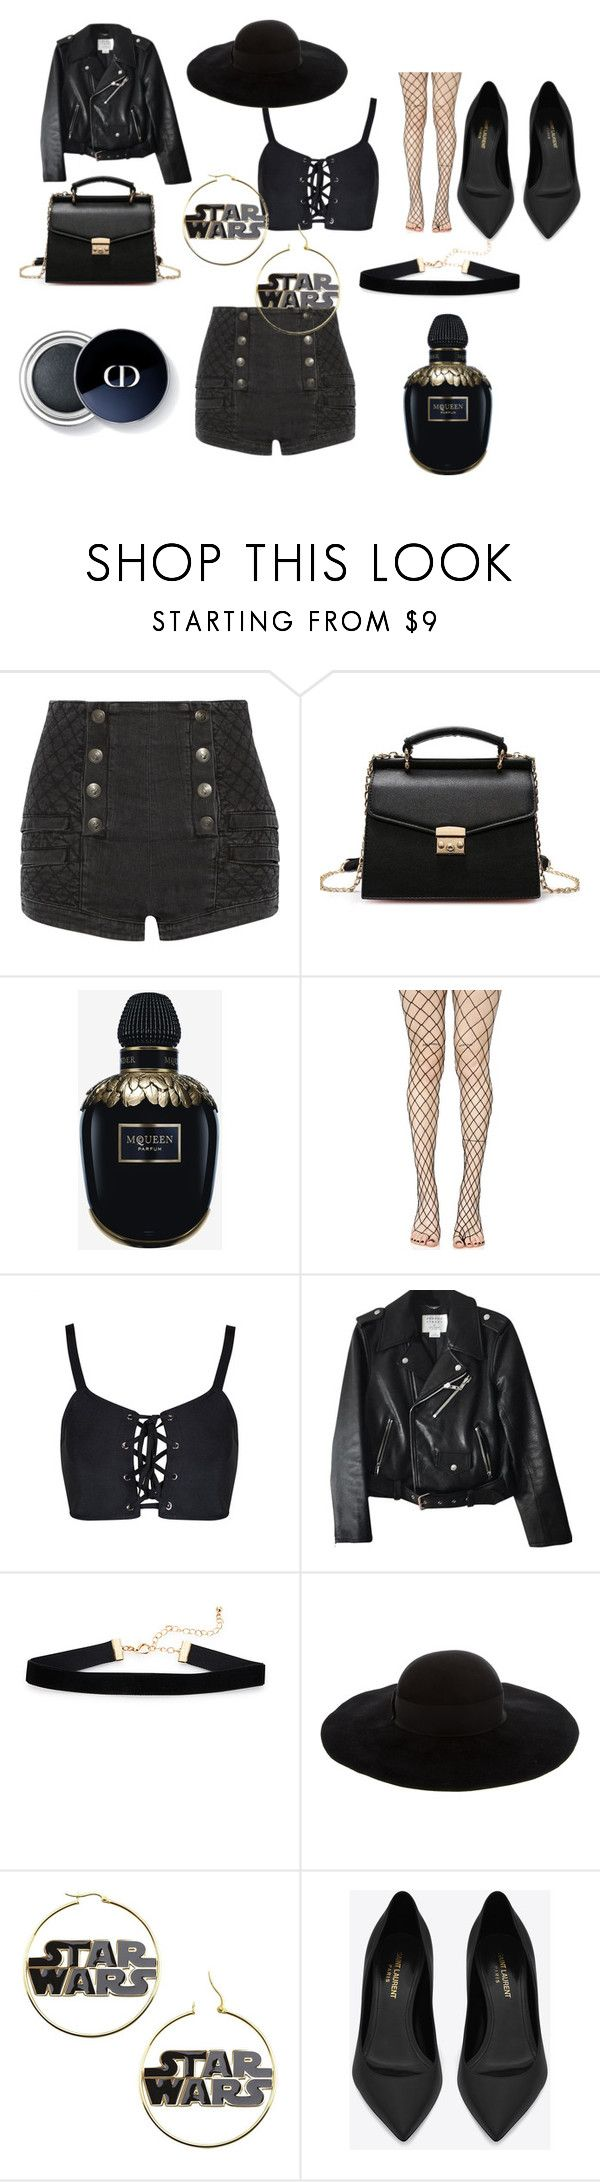 """BLACKSTAR BLAST"" by marguerite-dillworth on Polyvore featuring Pierre Balmain, Alexander McQueen, Leg Avenue, Kate Spade, Eugenia Kim and Yves Saint Laurent"